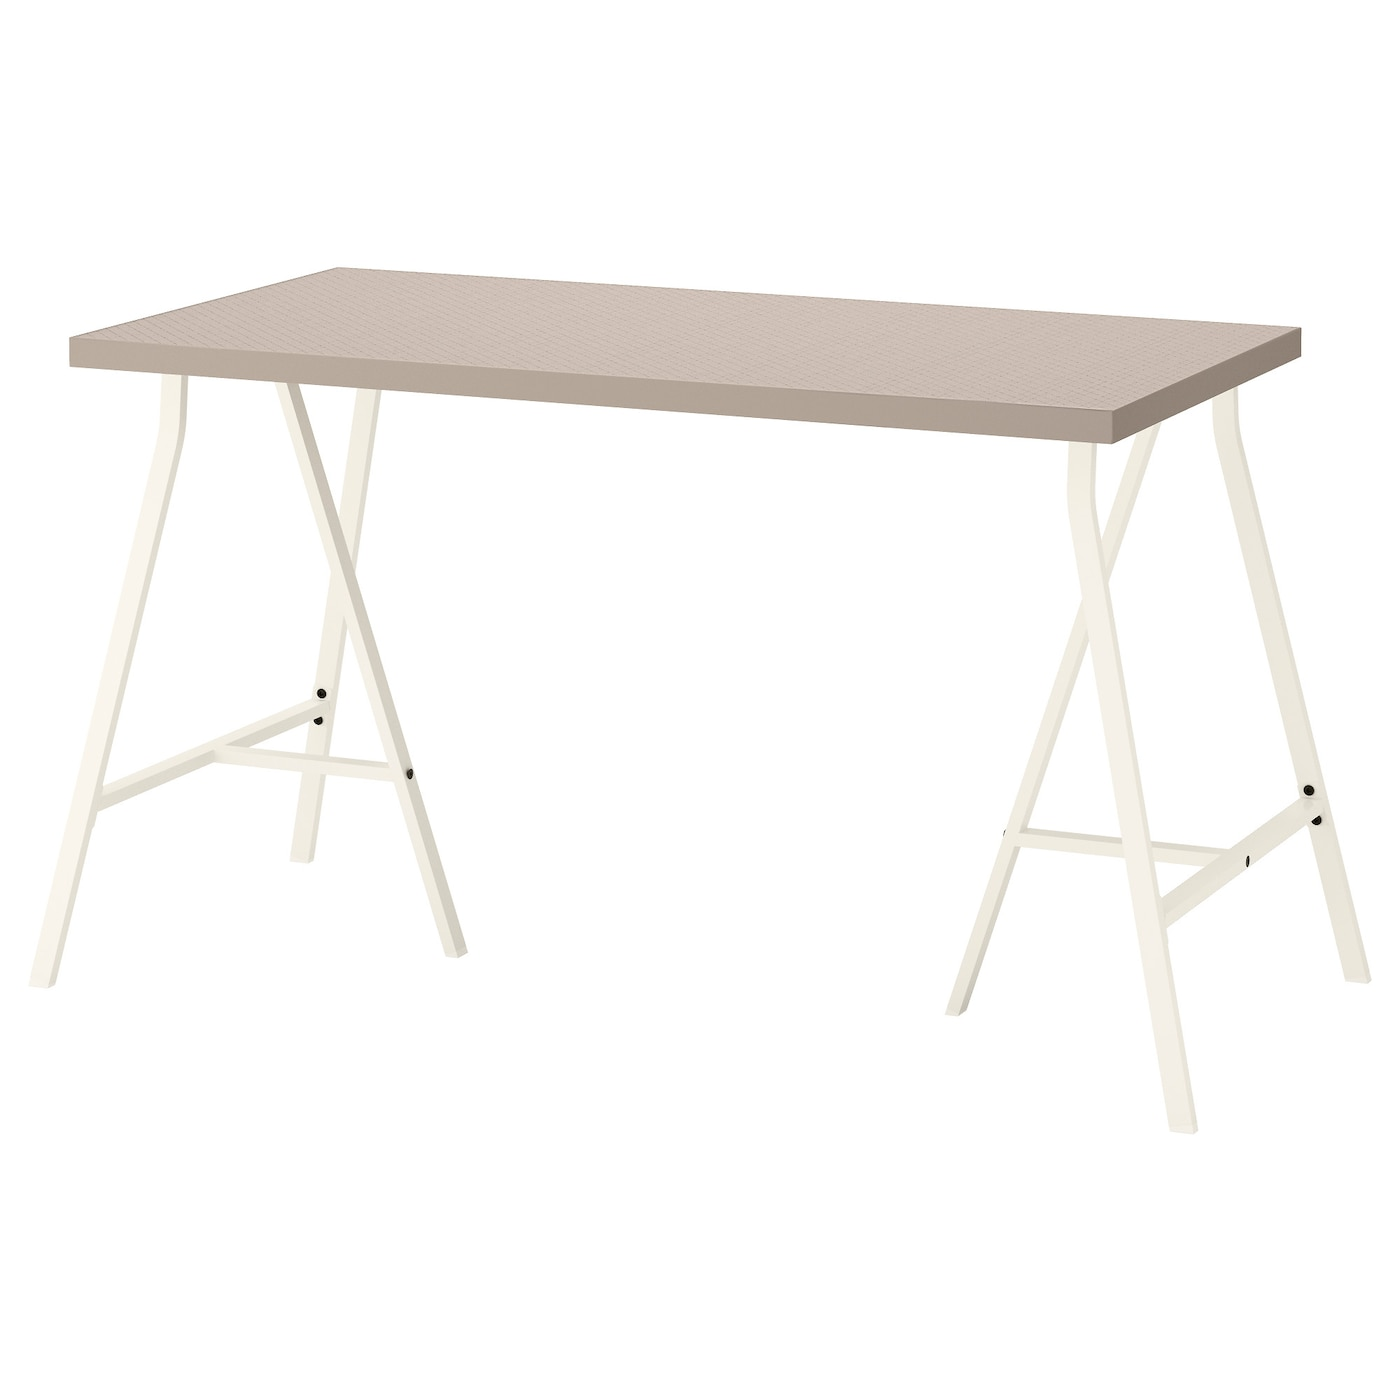 IKEA LERBERG/LINNMON table